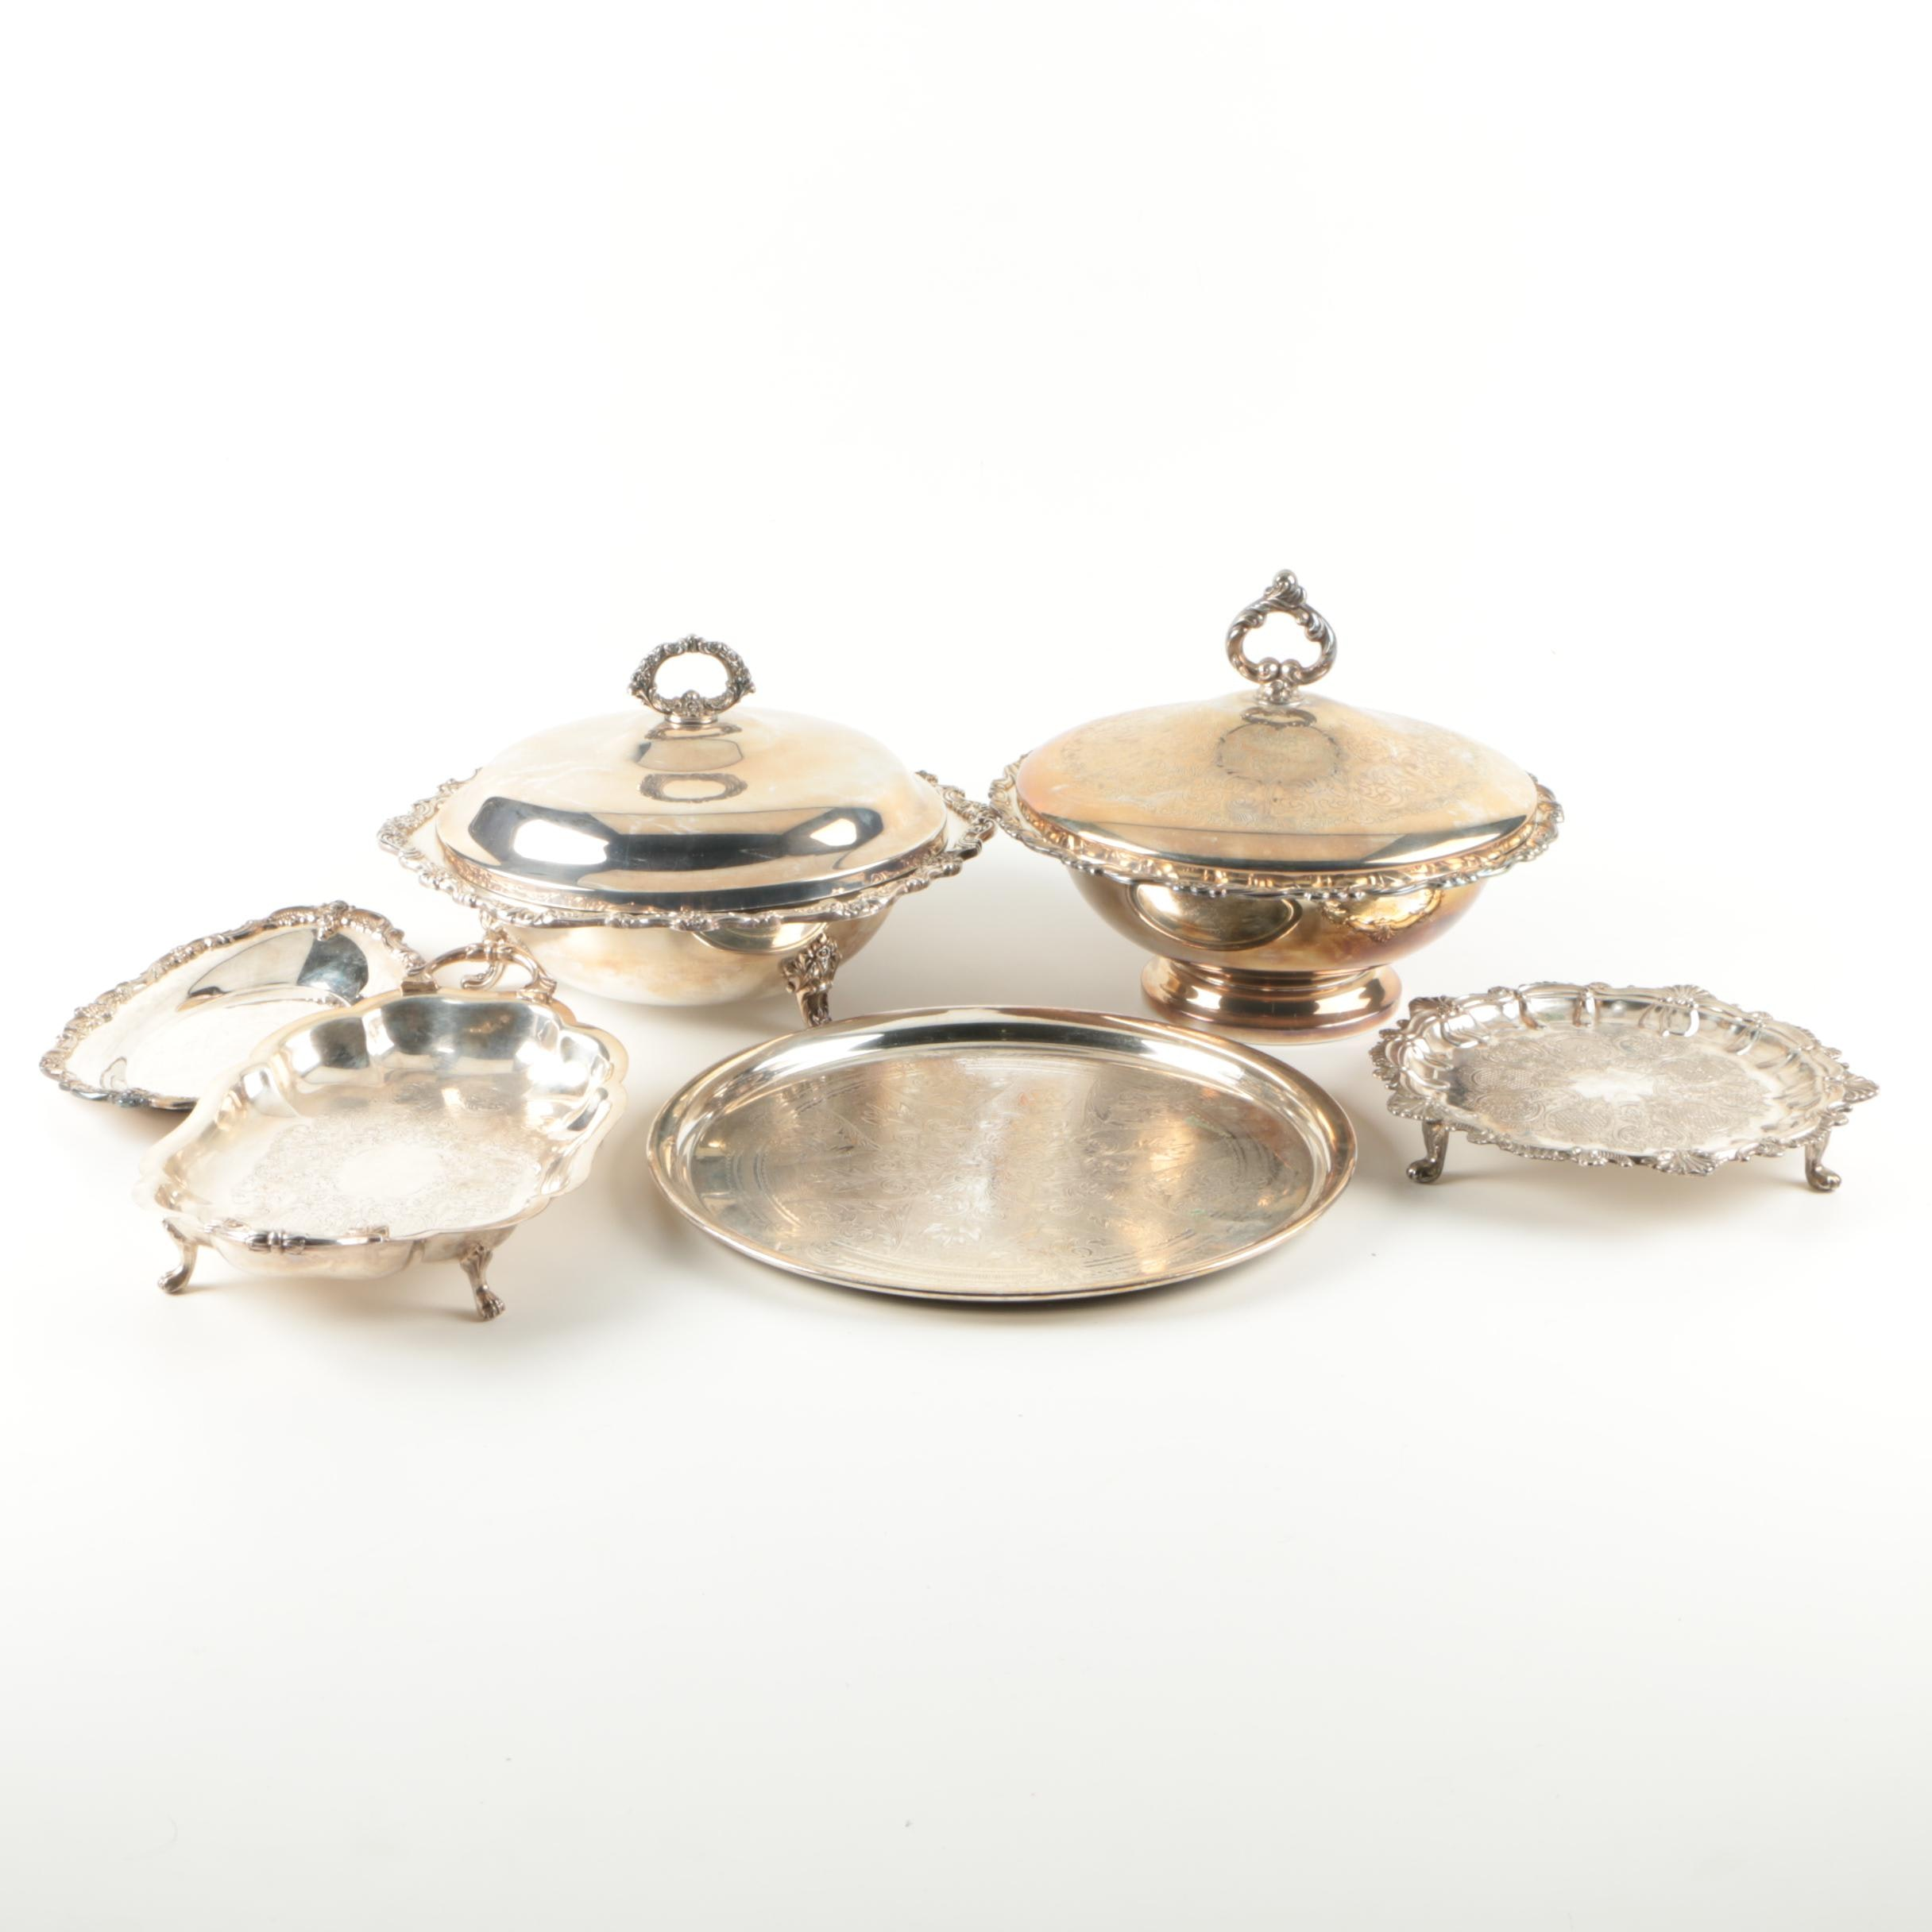 Silver-Plated Serving Ware Including Towle